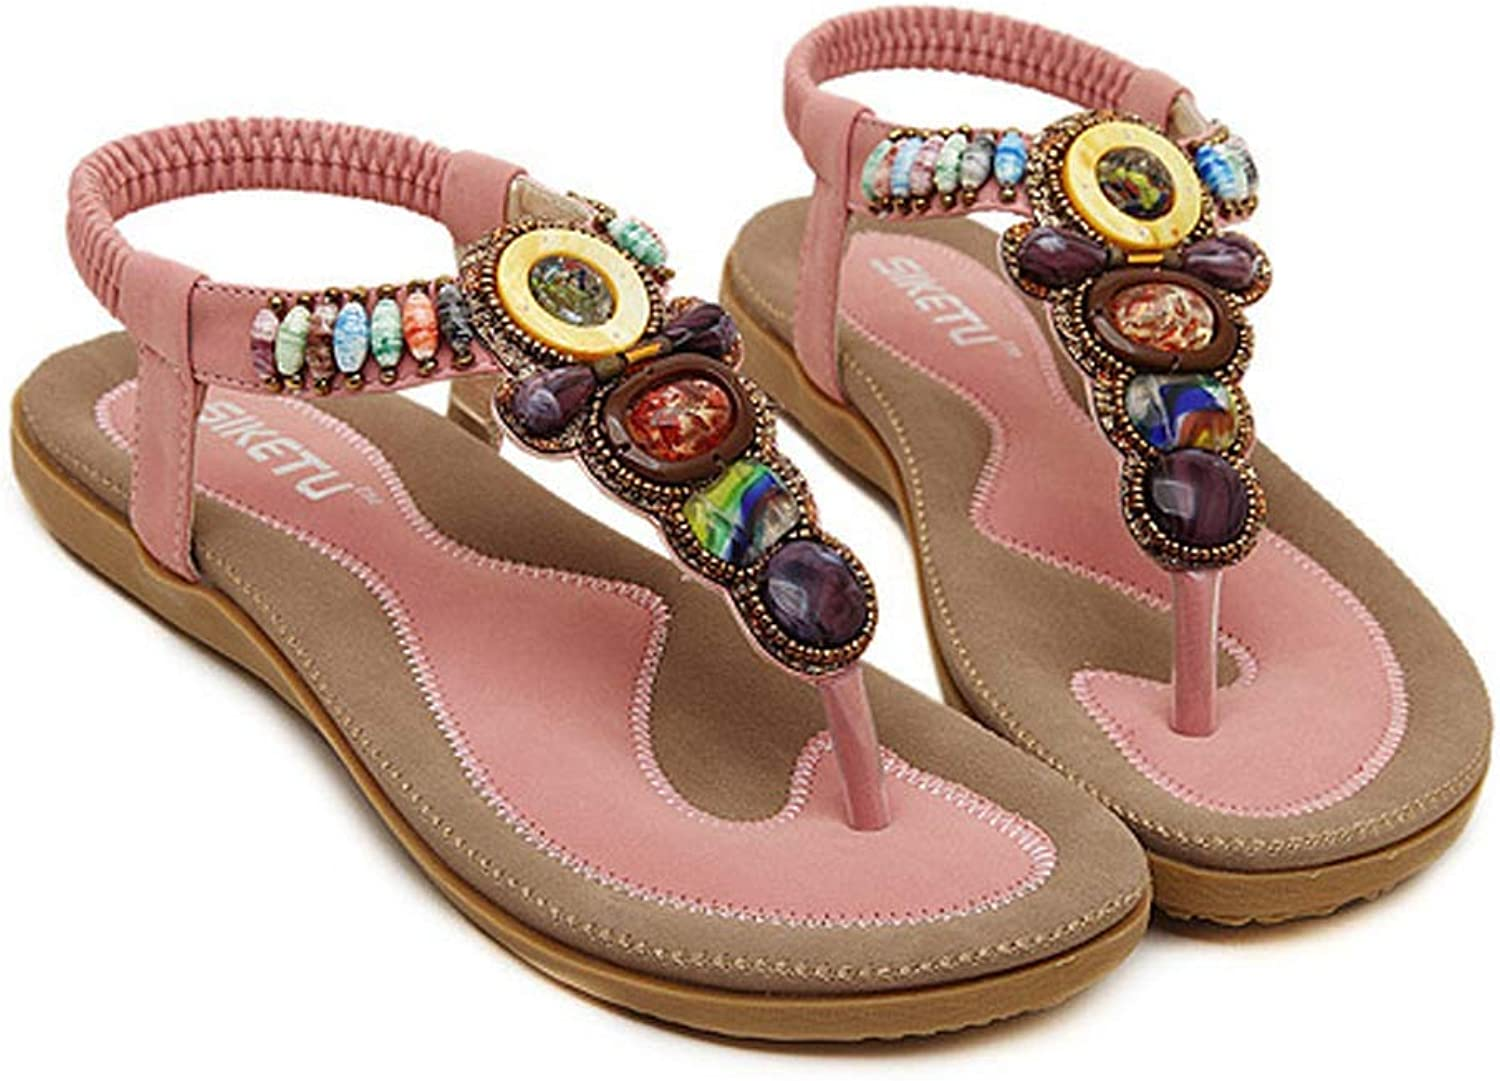 goldencar New Summer Ladies Summer Bohemia Beach Flops shoes Women shoes Sandles Sweet Beaded Clip Toe Flats